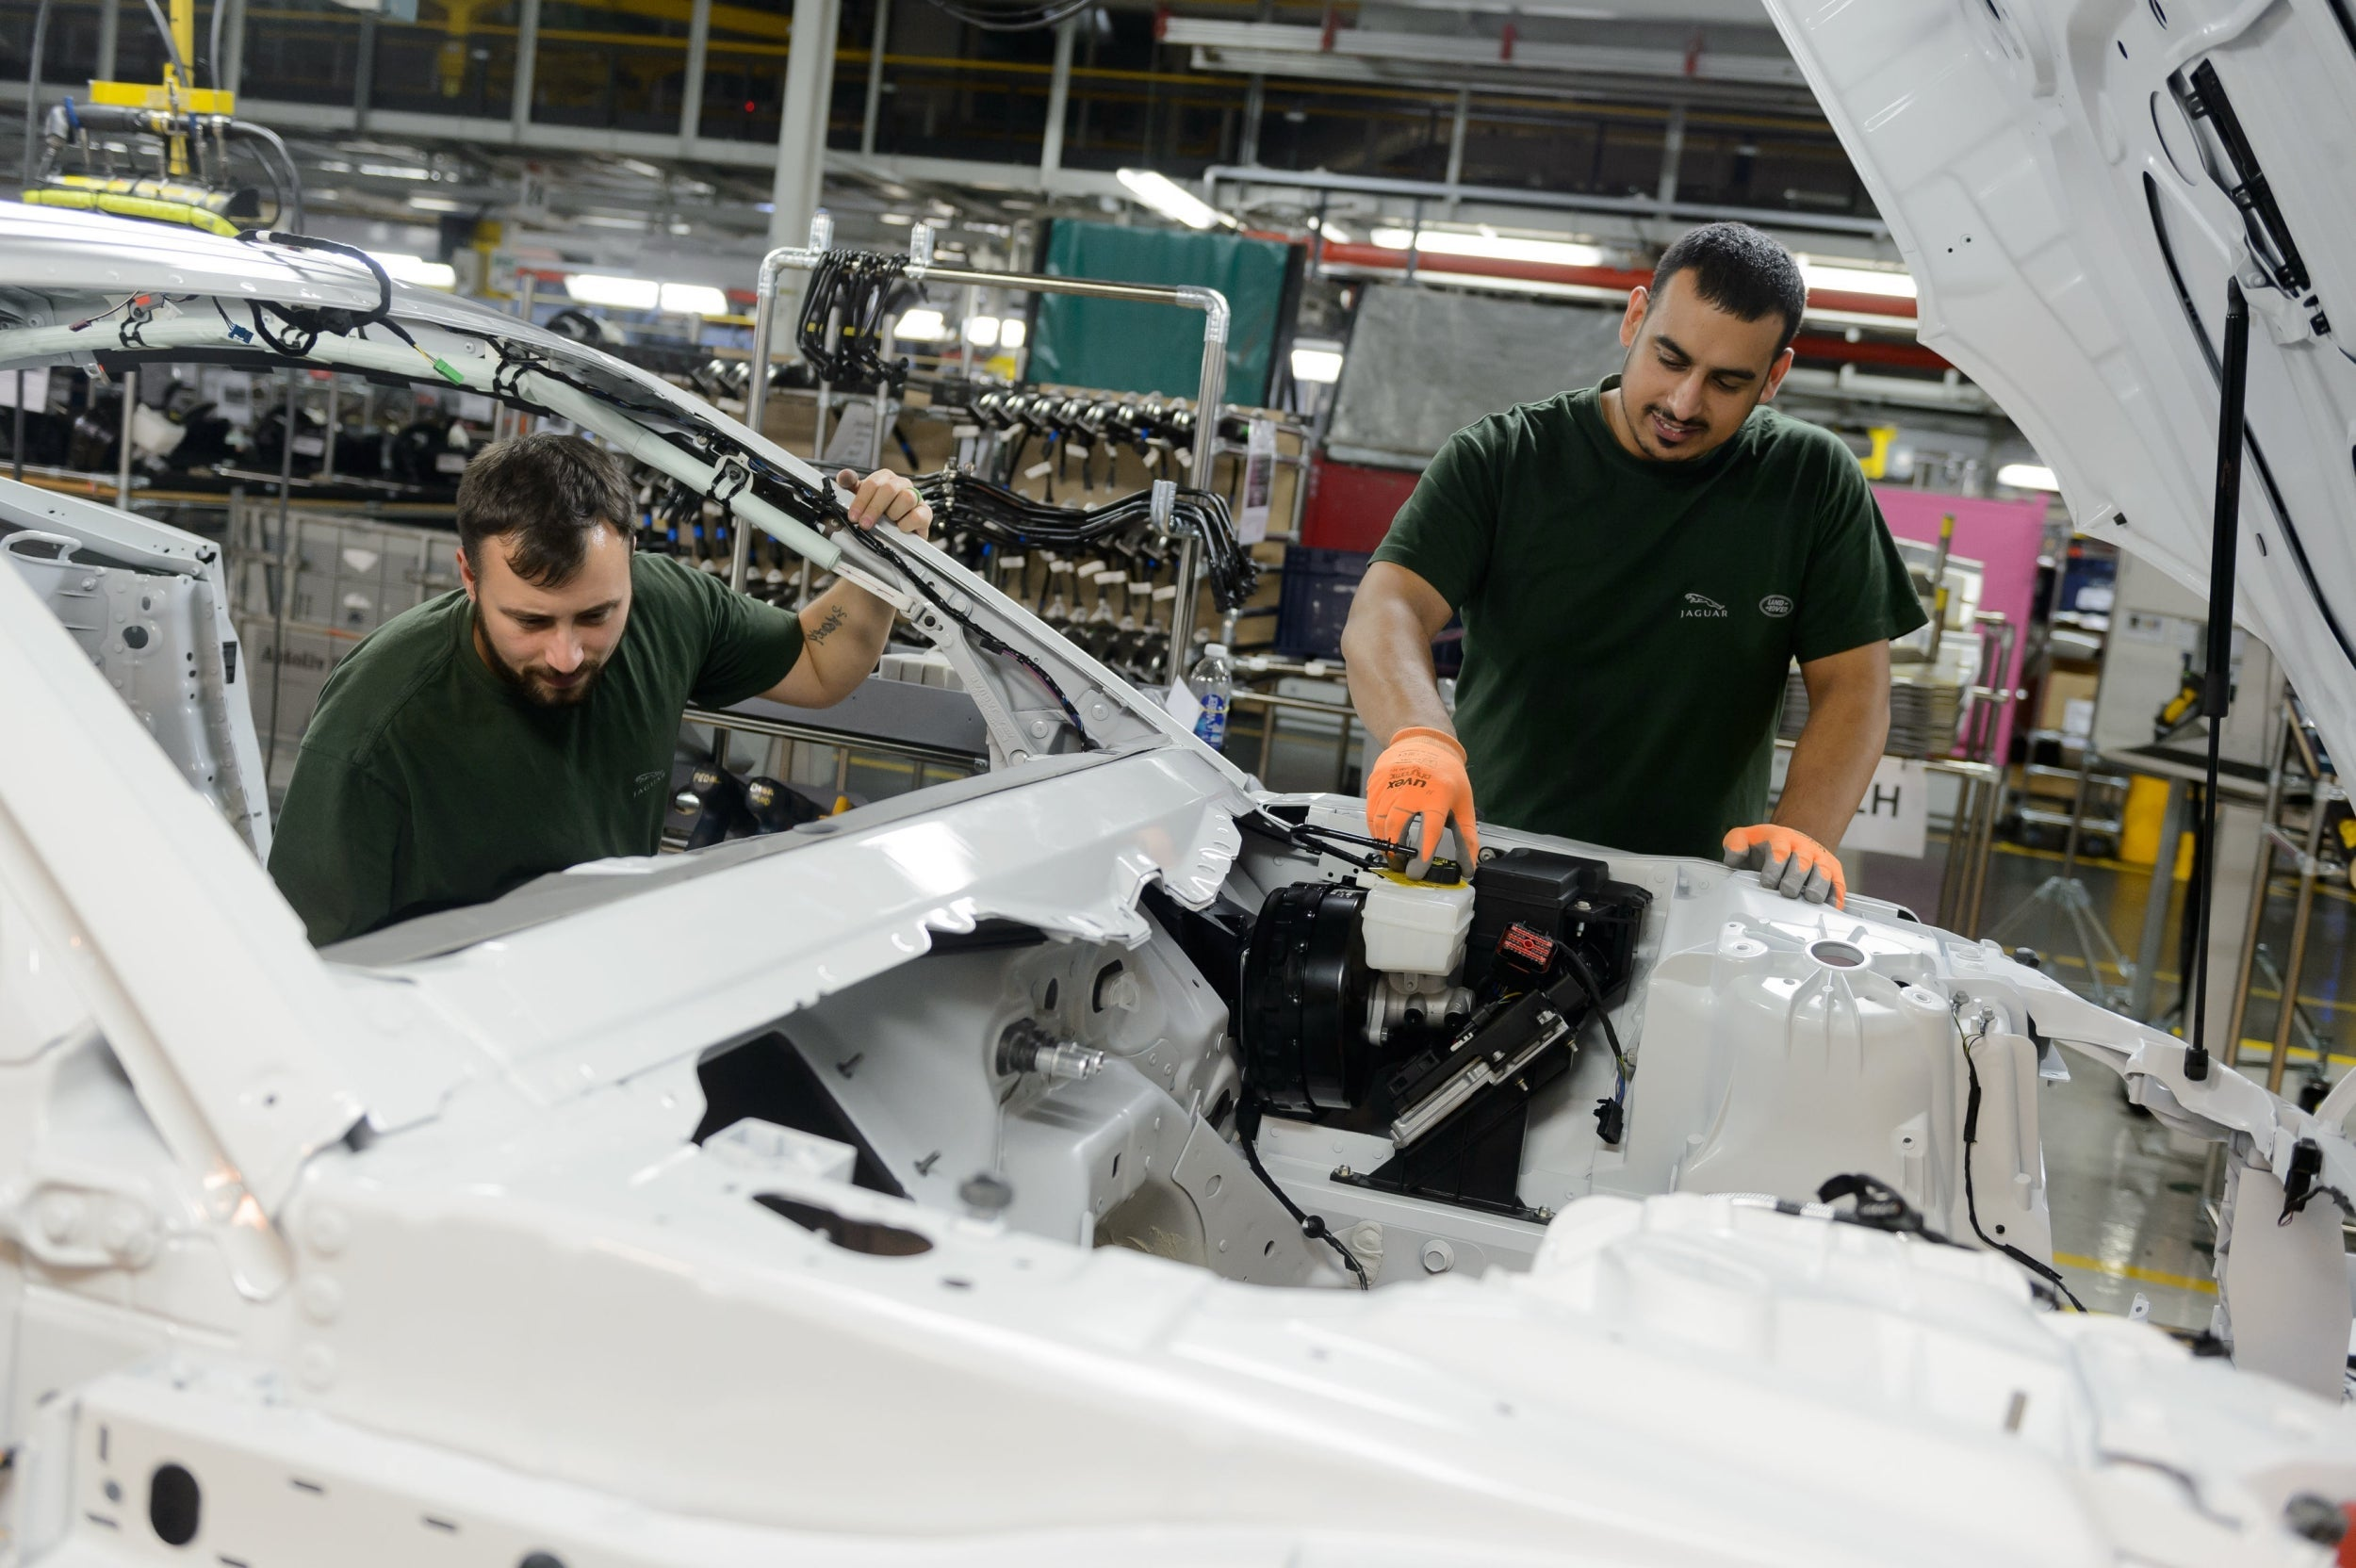 UK productivity posts sharpest fall in five years, boding ill for pay rises